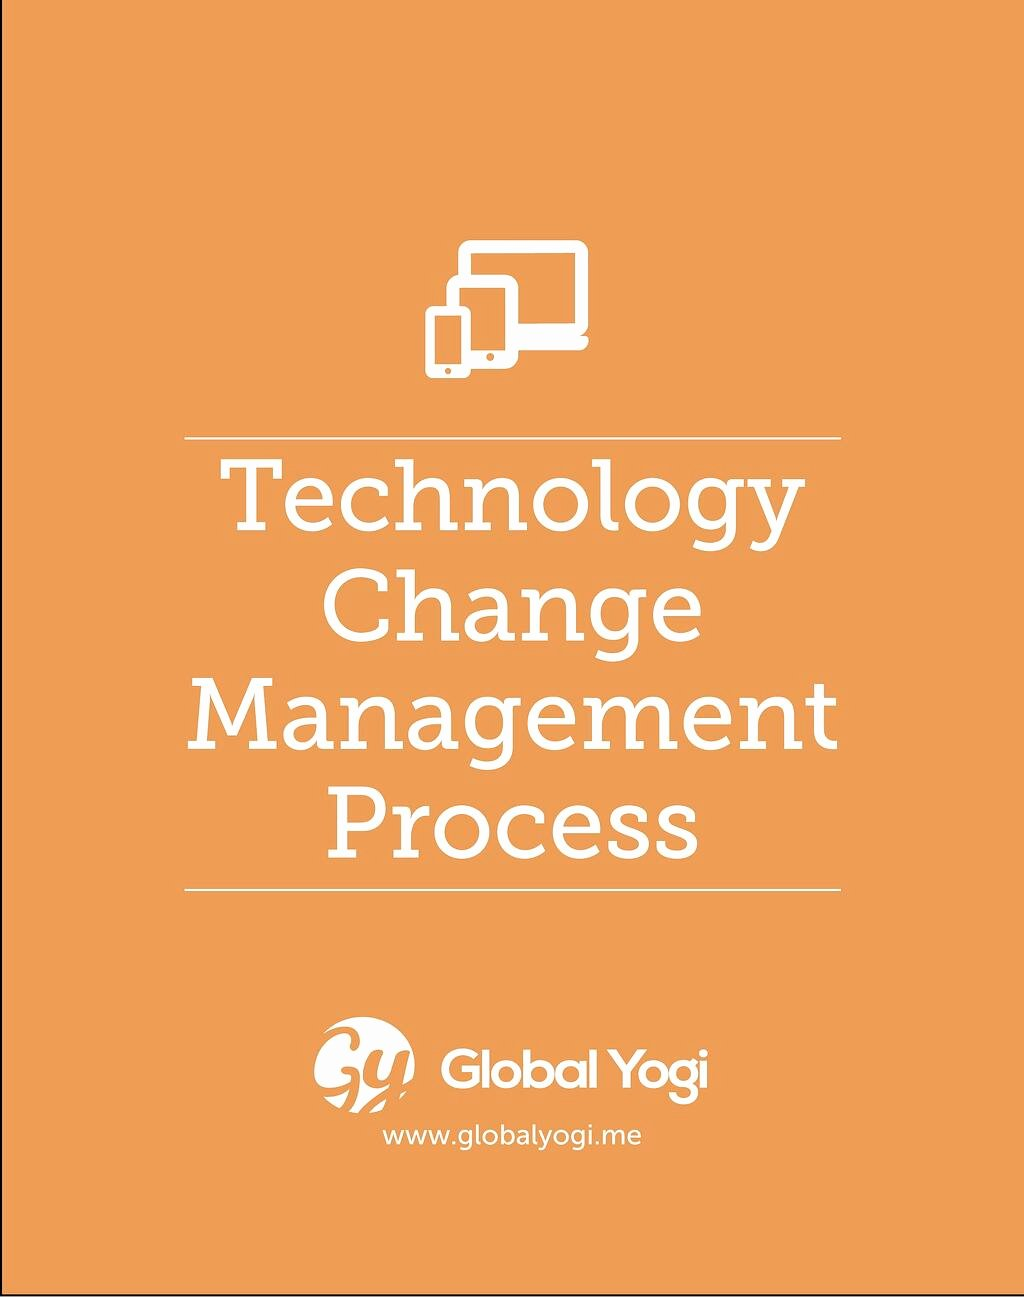 Technical White Paper Template New Download Free Technology Change Management Process